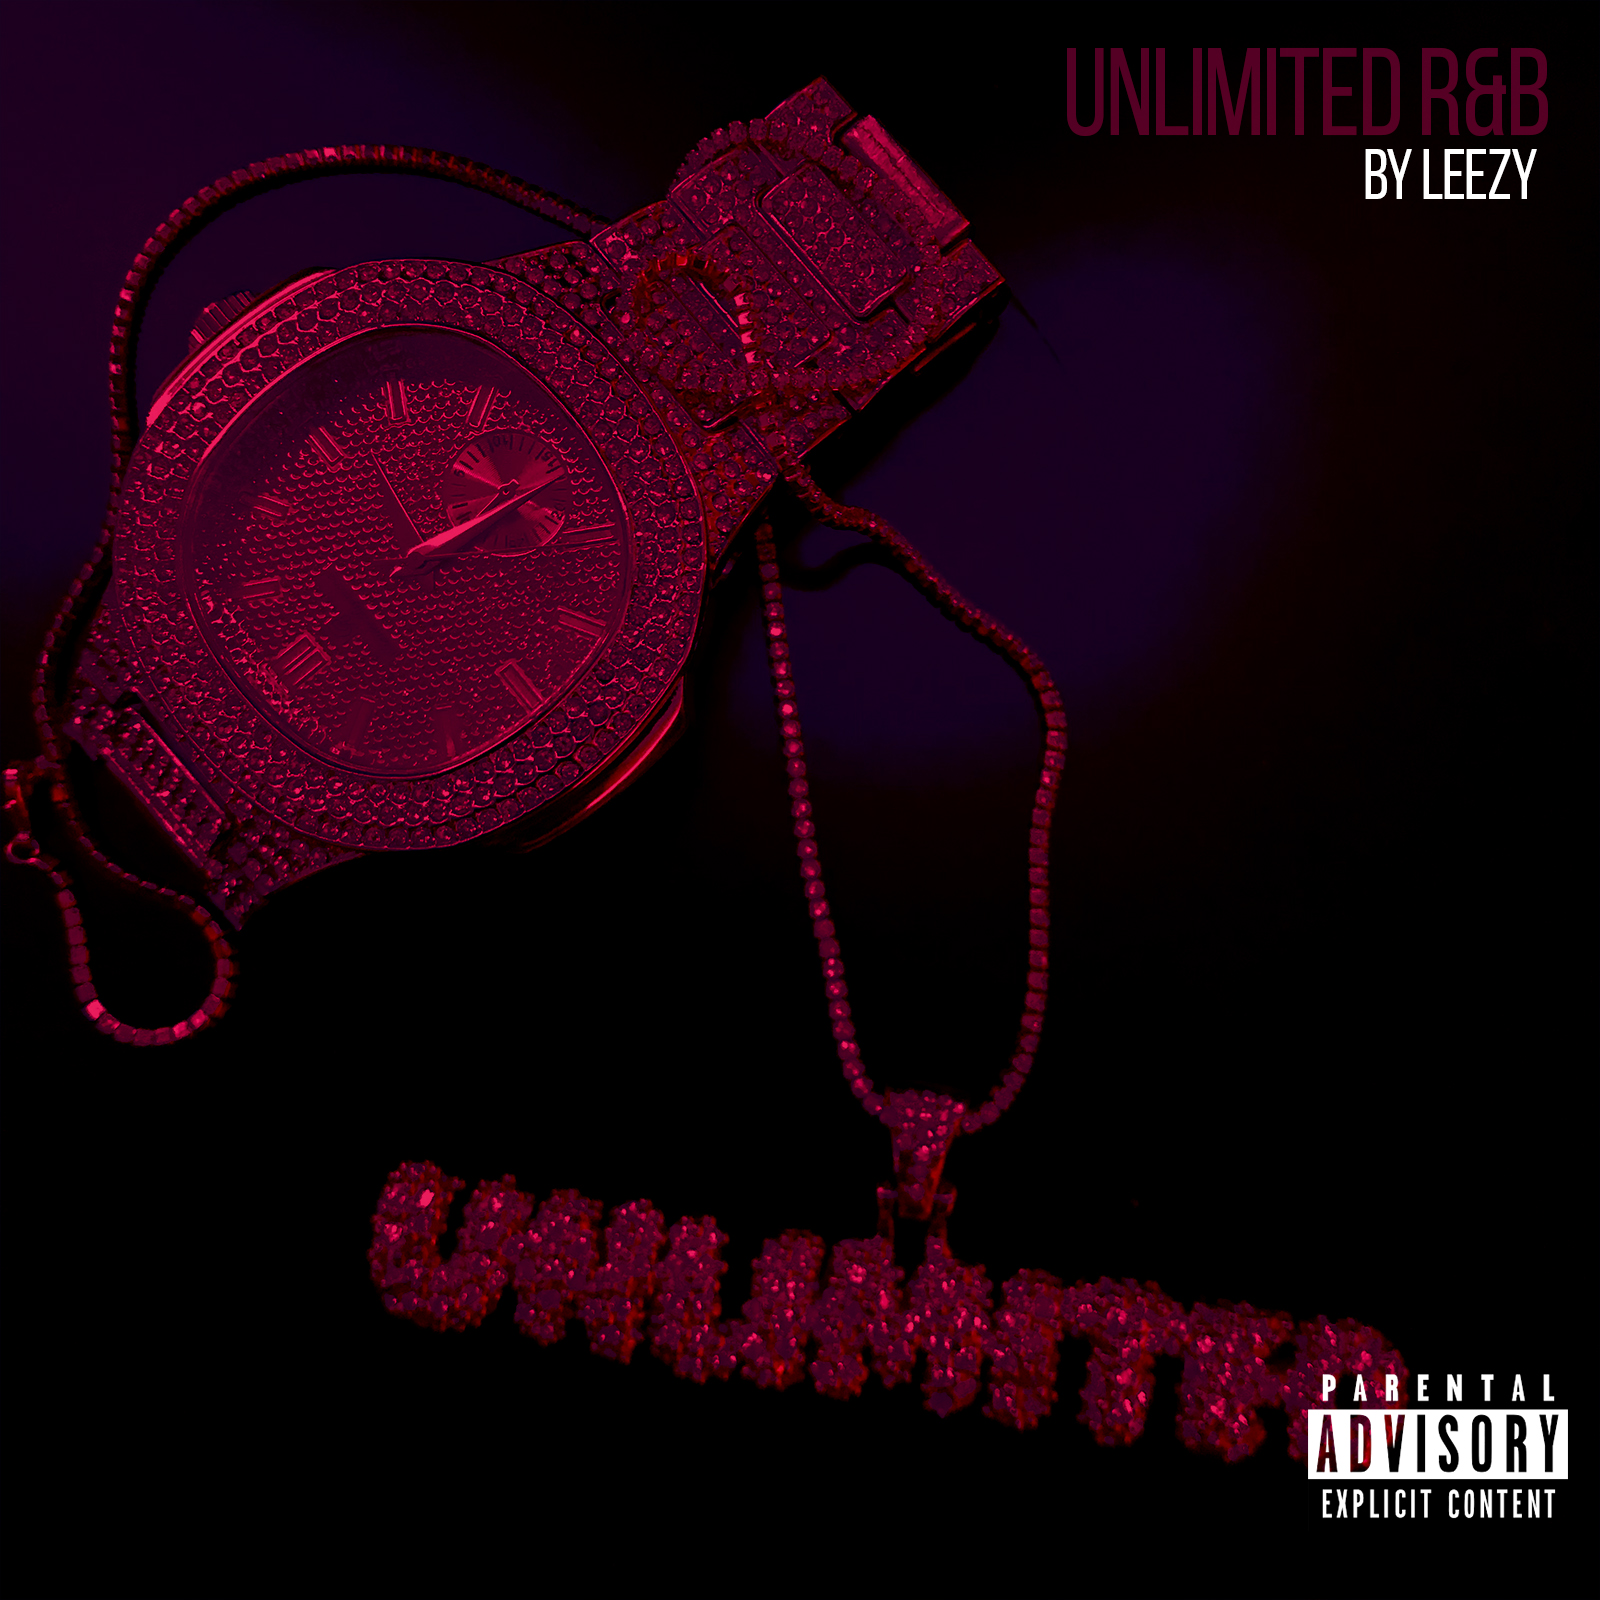 Unlimited R&B - Written by LeezyMix & Mastered by Leezy